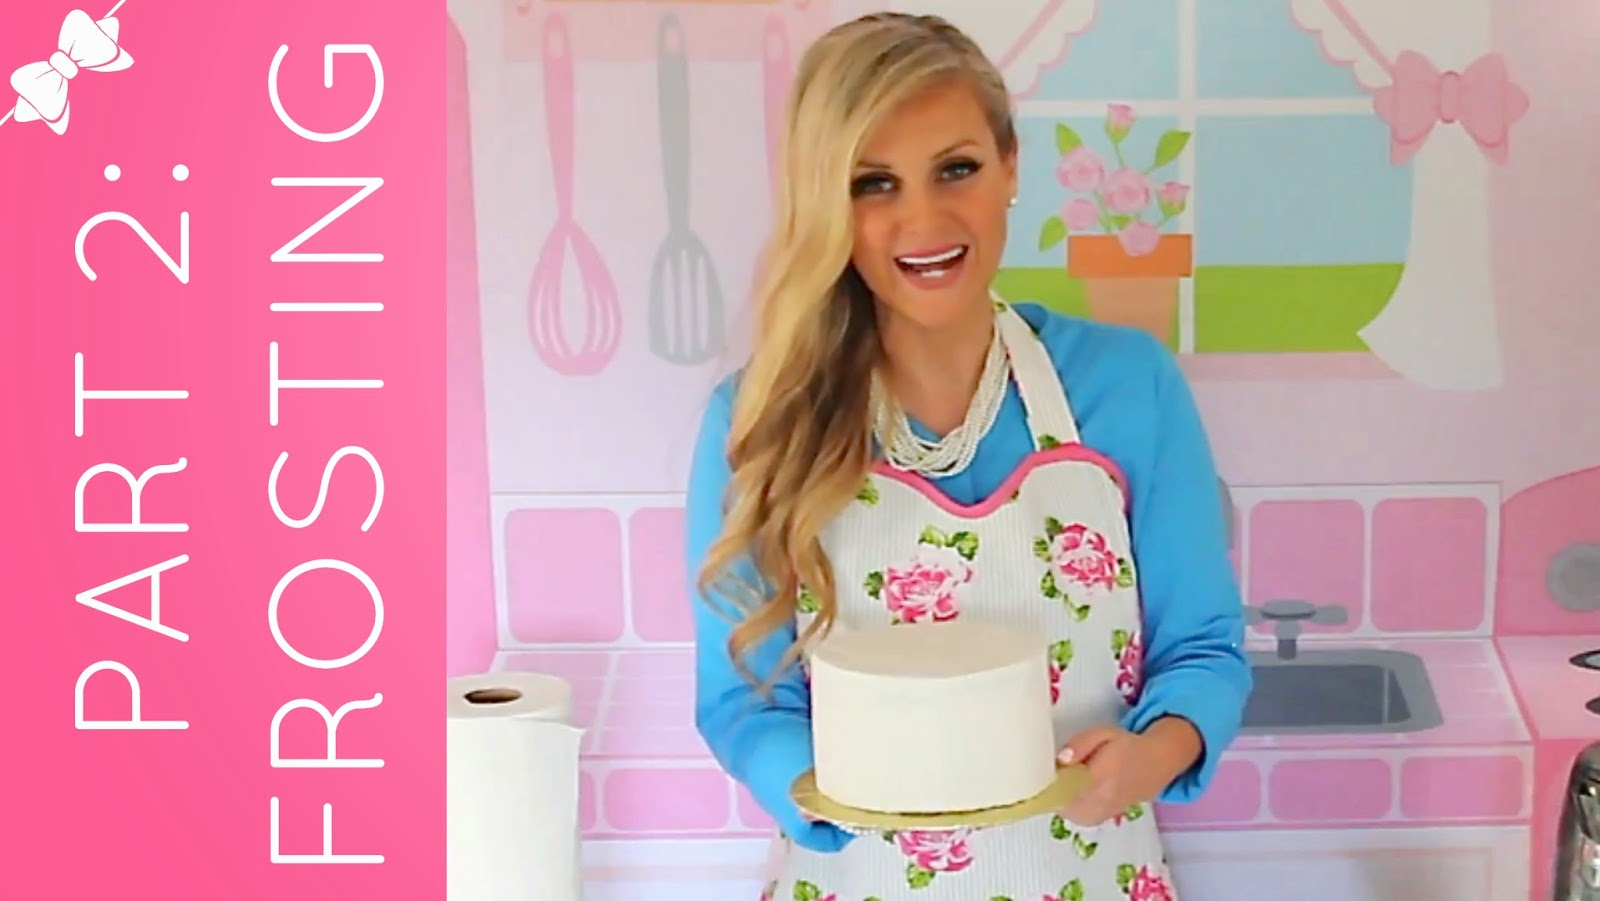 http://blog.dollhousebakeshoppe.com/2015/04/video-cake-decorating-101-part-2-tricks.html